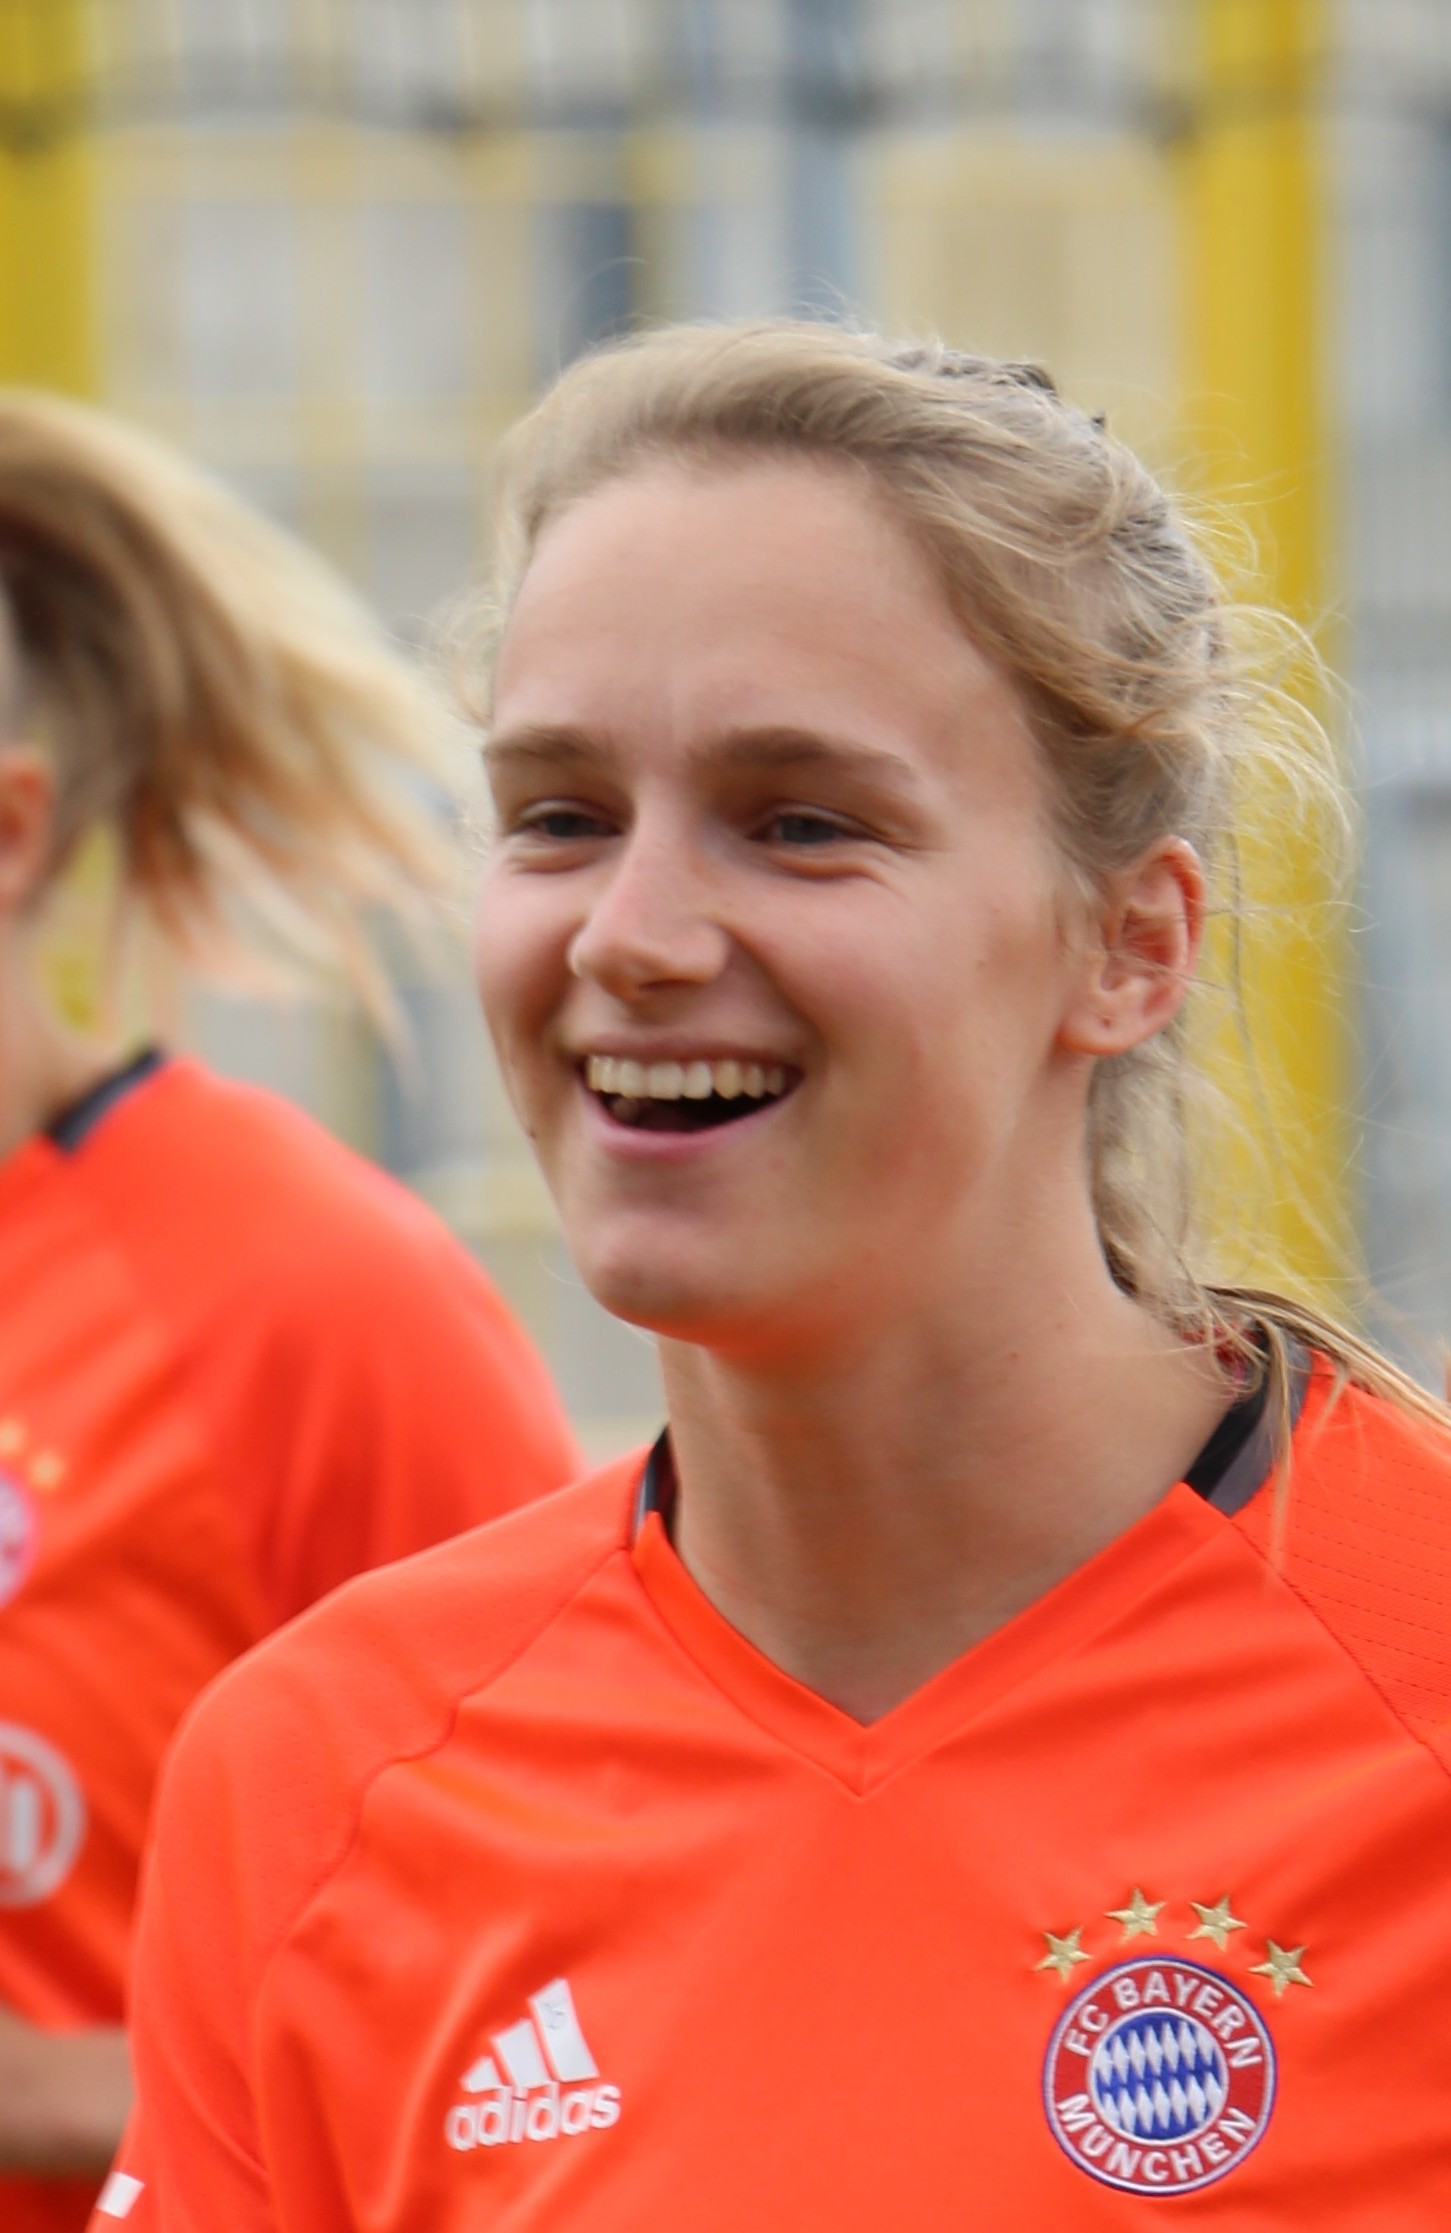 The 24-year old daughter of father René Miedema and mother Carolien Miedema Vivianne Miedema in 2021 photo. Vivianne Miedema earned a 0.2 million dollar salary - leaving the net worth at  million in 2021